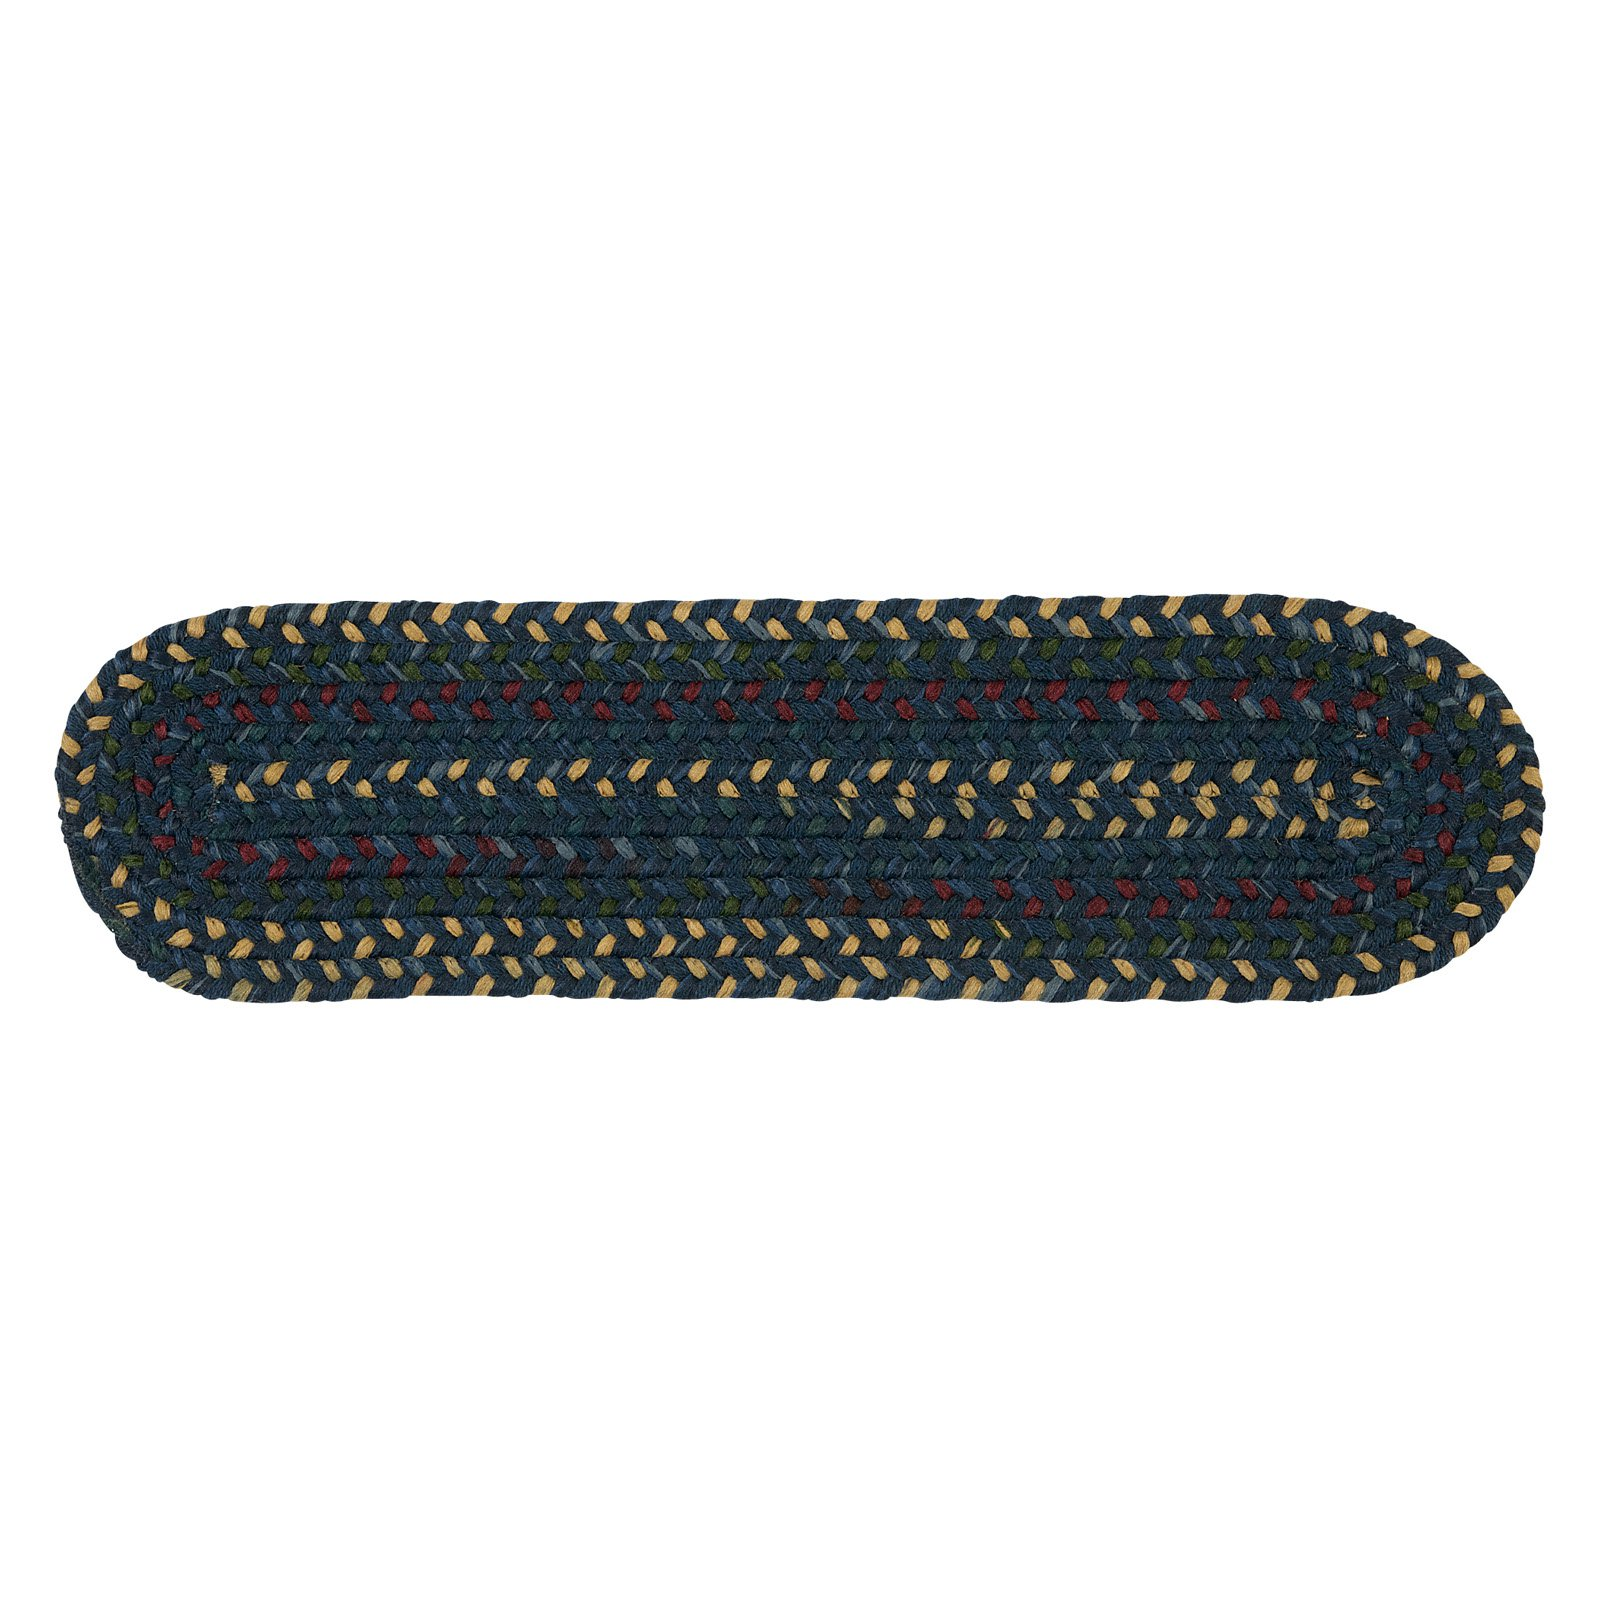 Colonial Mills Midnight Stair Tread - 8 x 28 in. - Set of 13